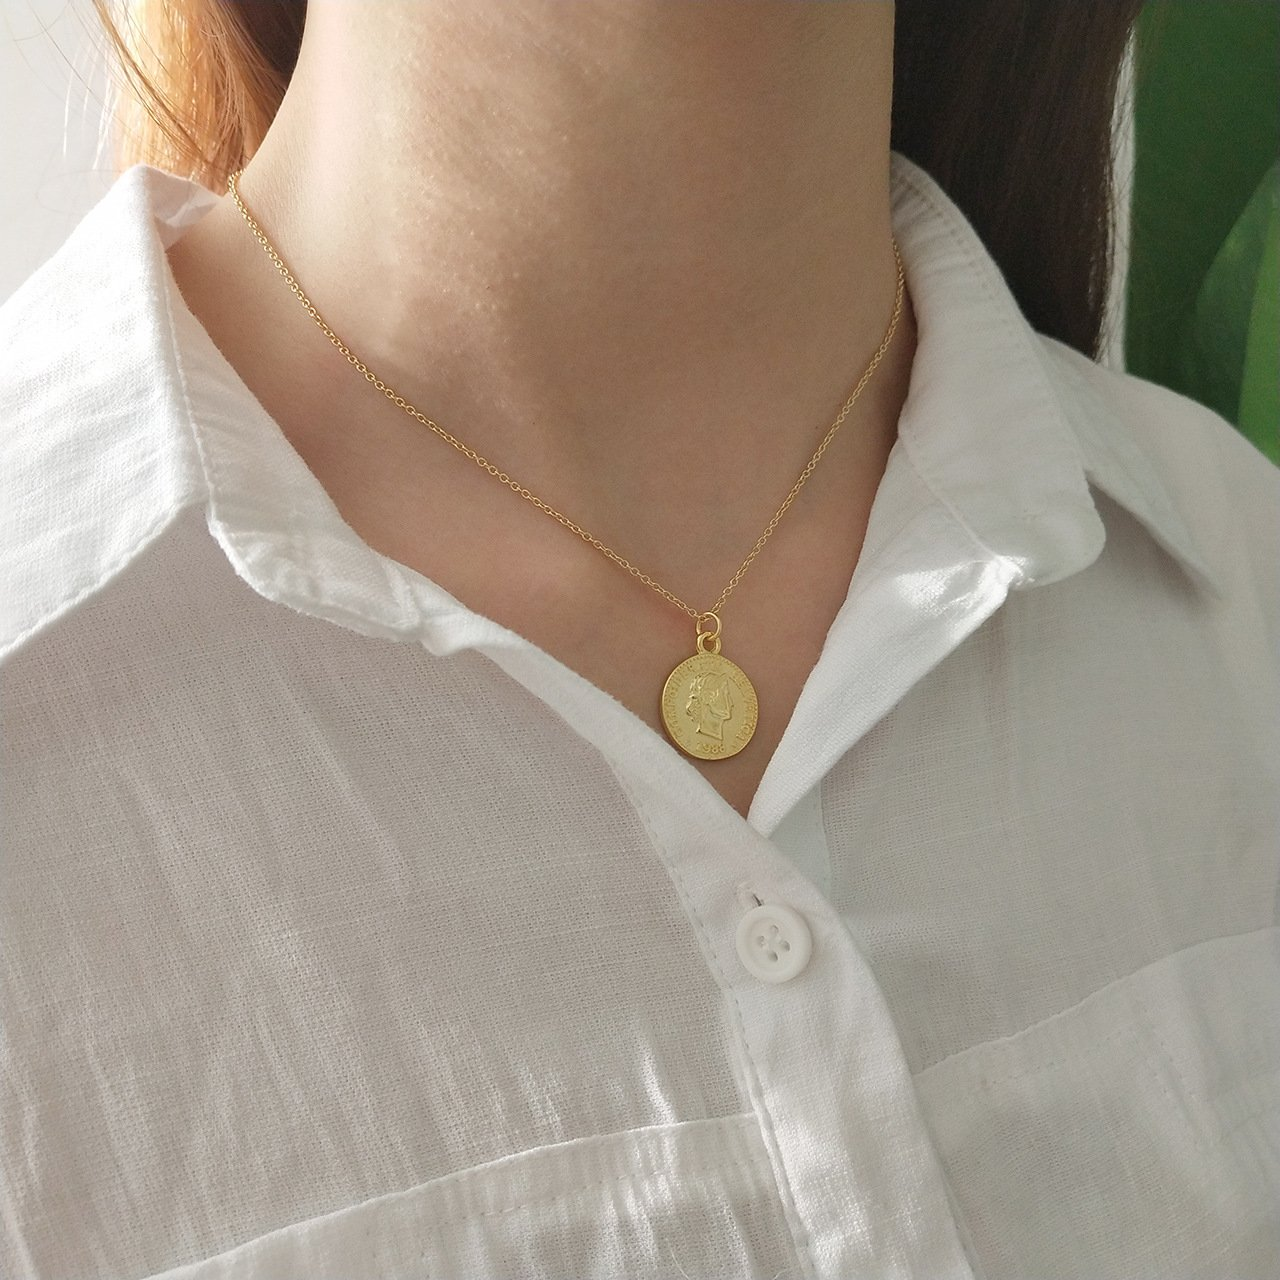 925 Sterling Silver Chain Necklace Jewelry Charm Gold Coin Pendent Simple Delicate Chic Fashion by yomee (Image #5)